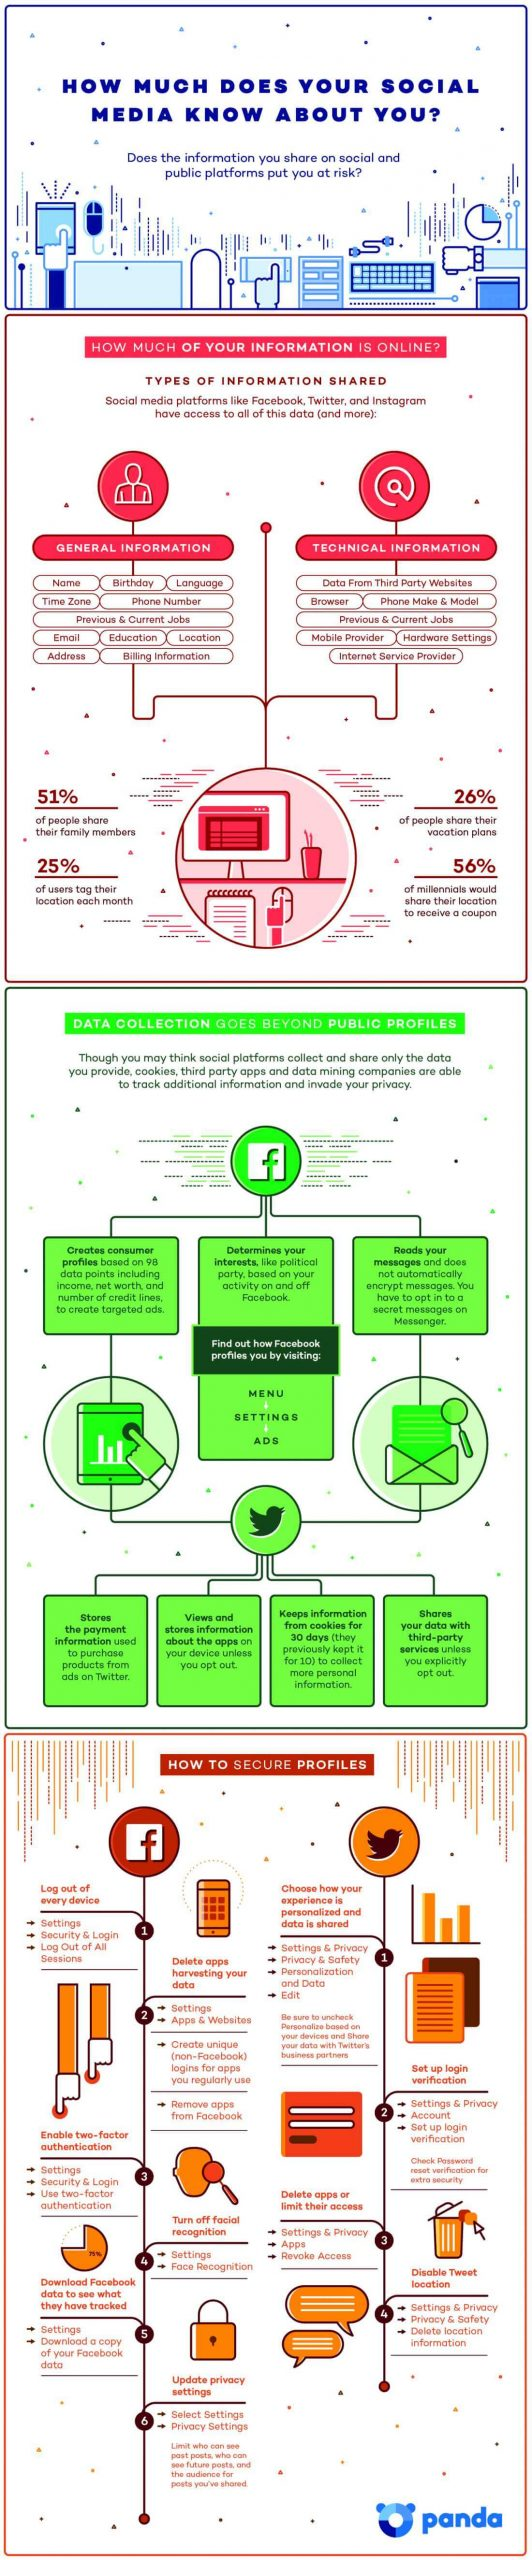 Social Media Infographic compressed